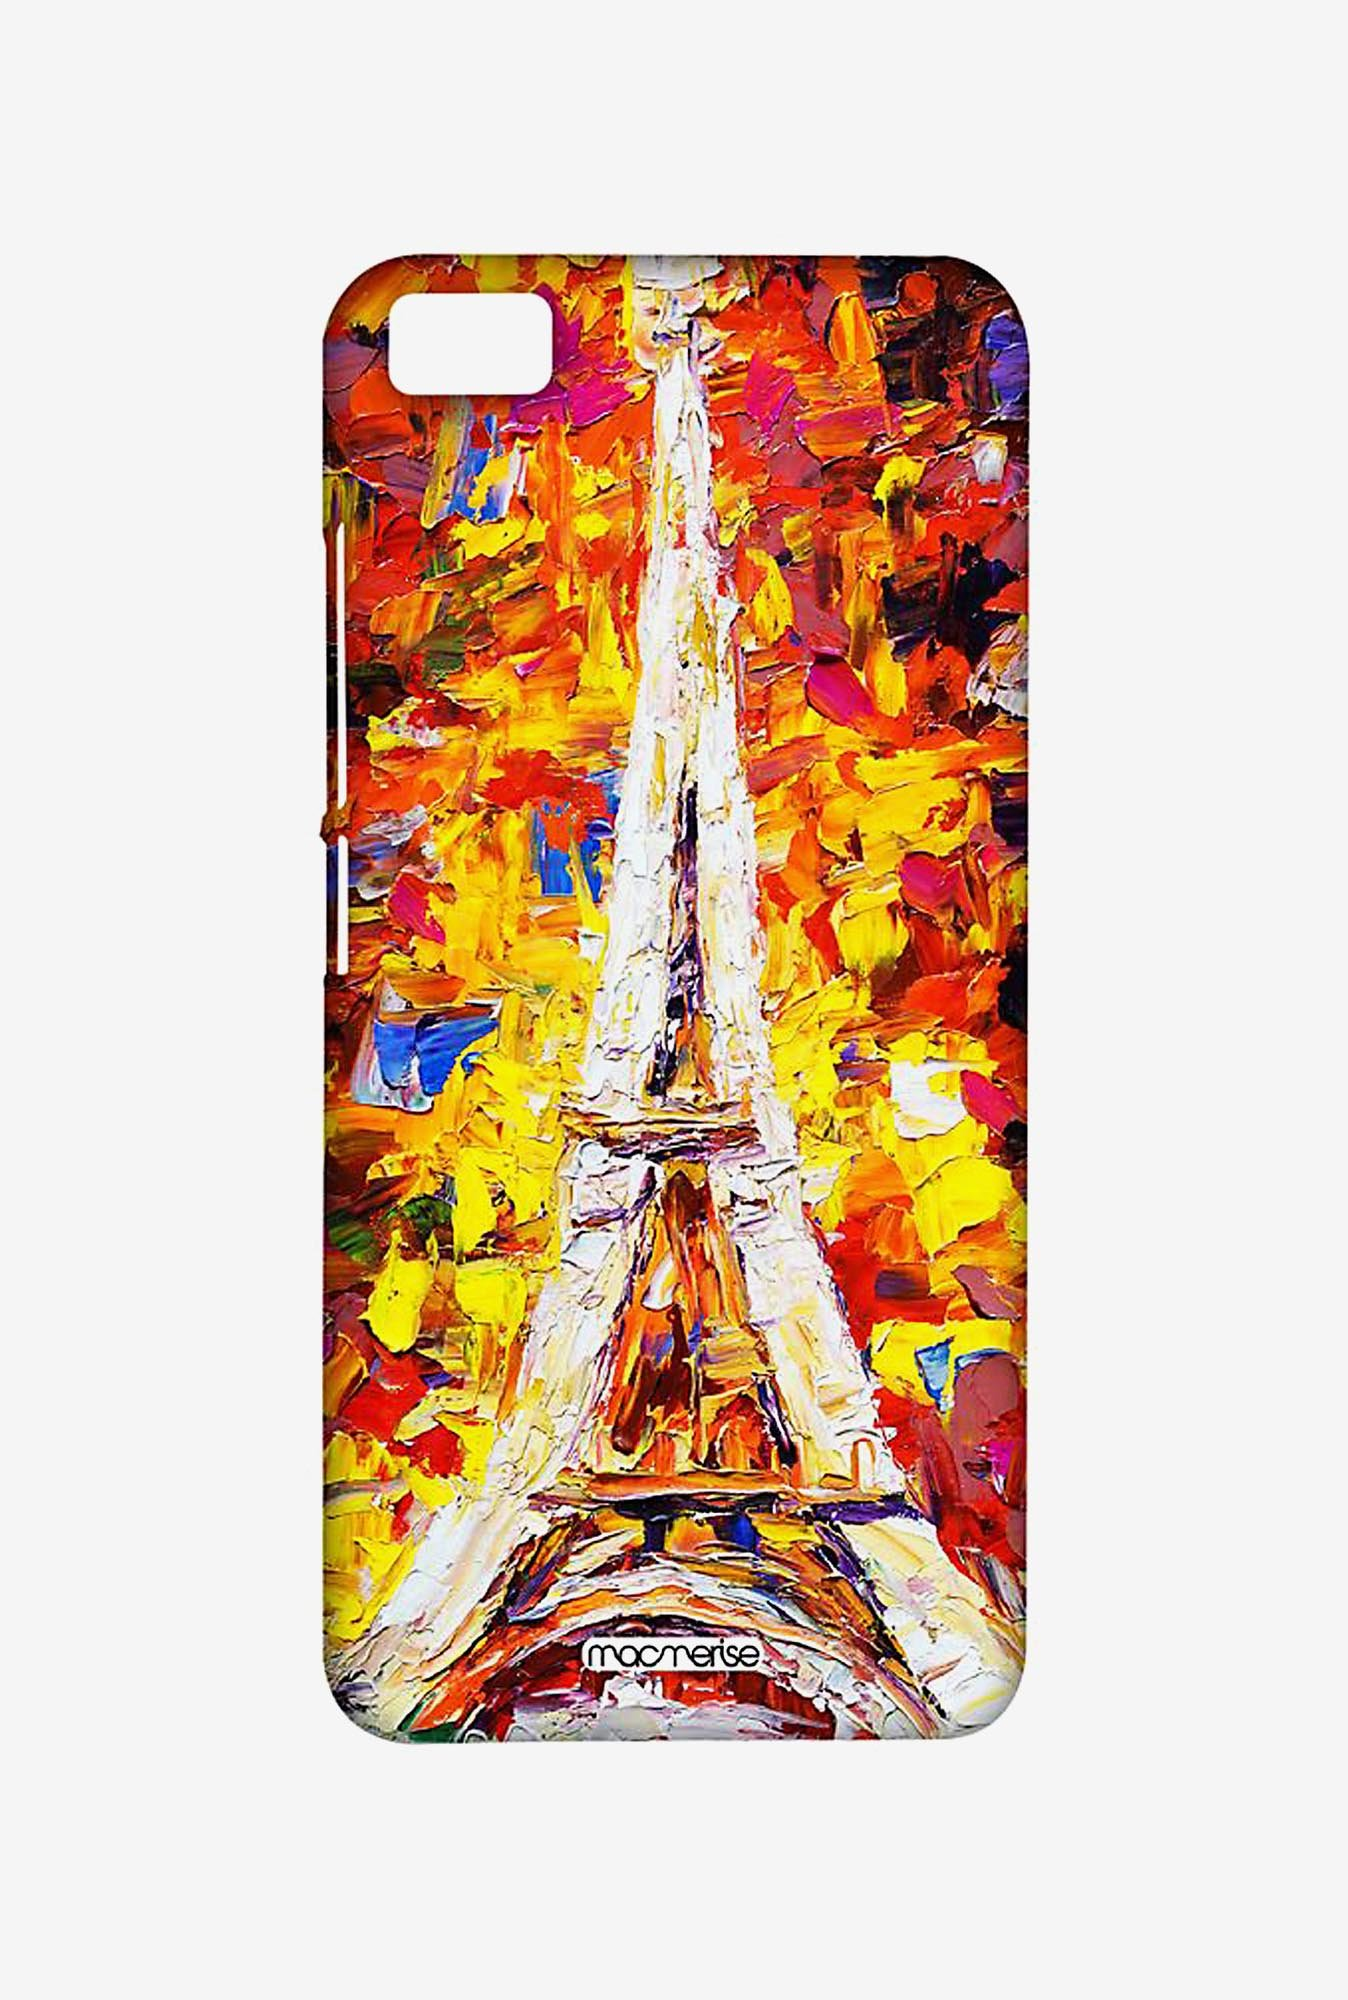 Macmerise Artistic Eifel Sublime Case for Xiaomi Mi5